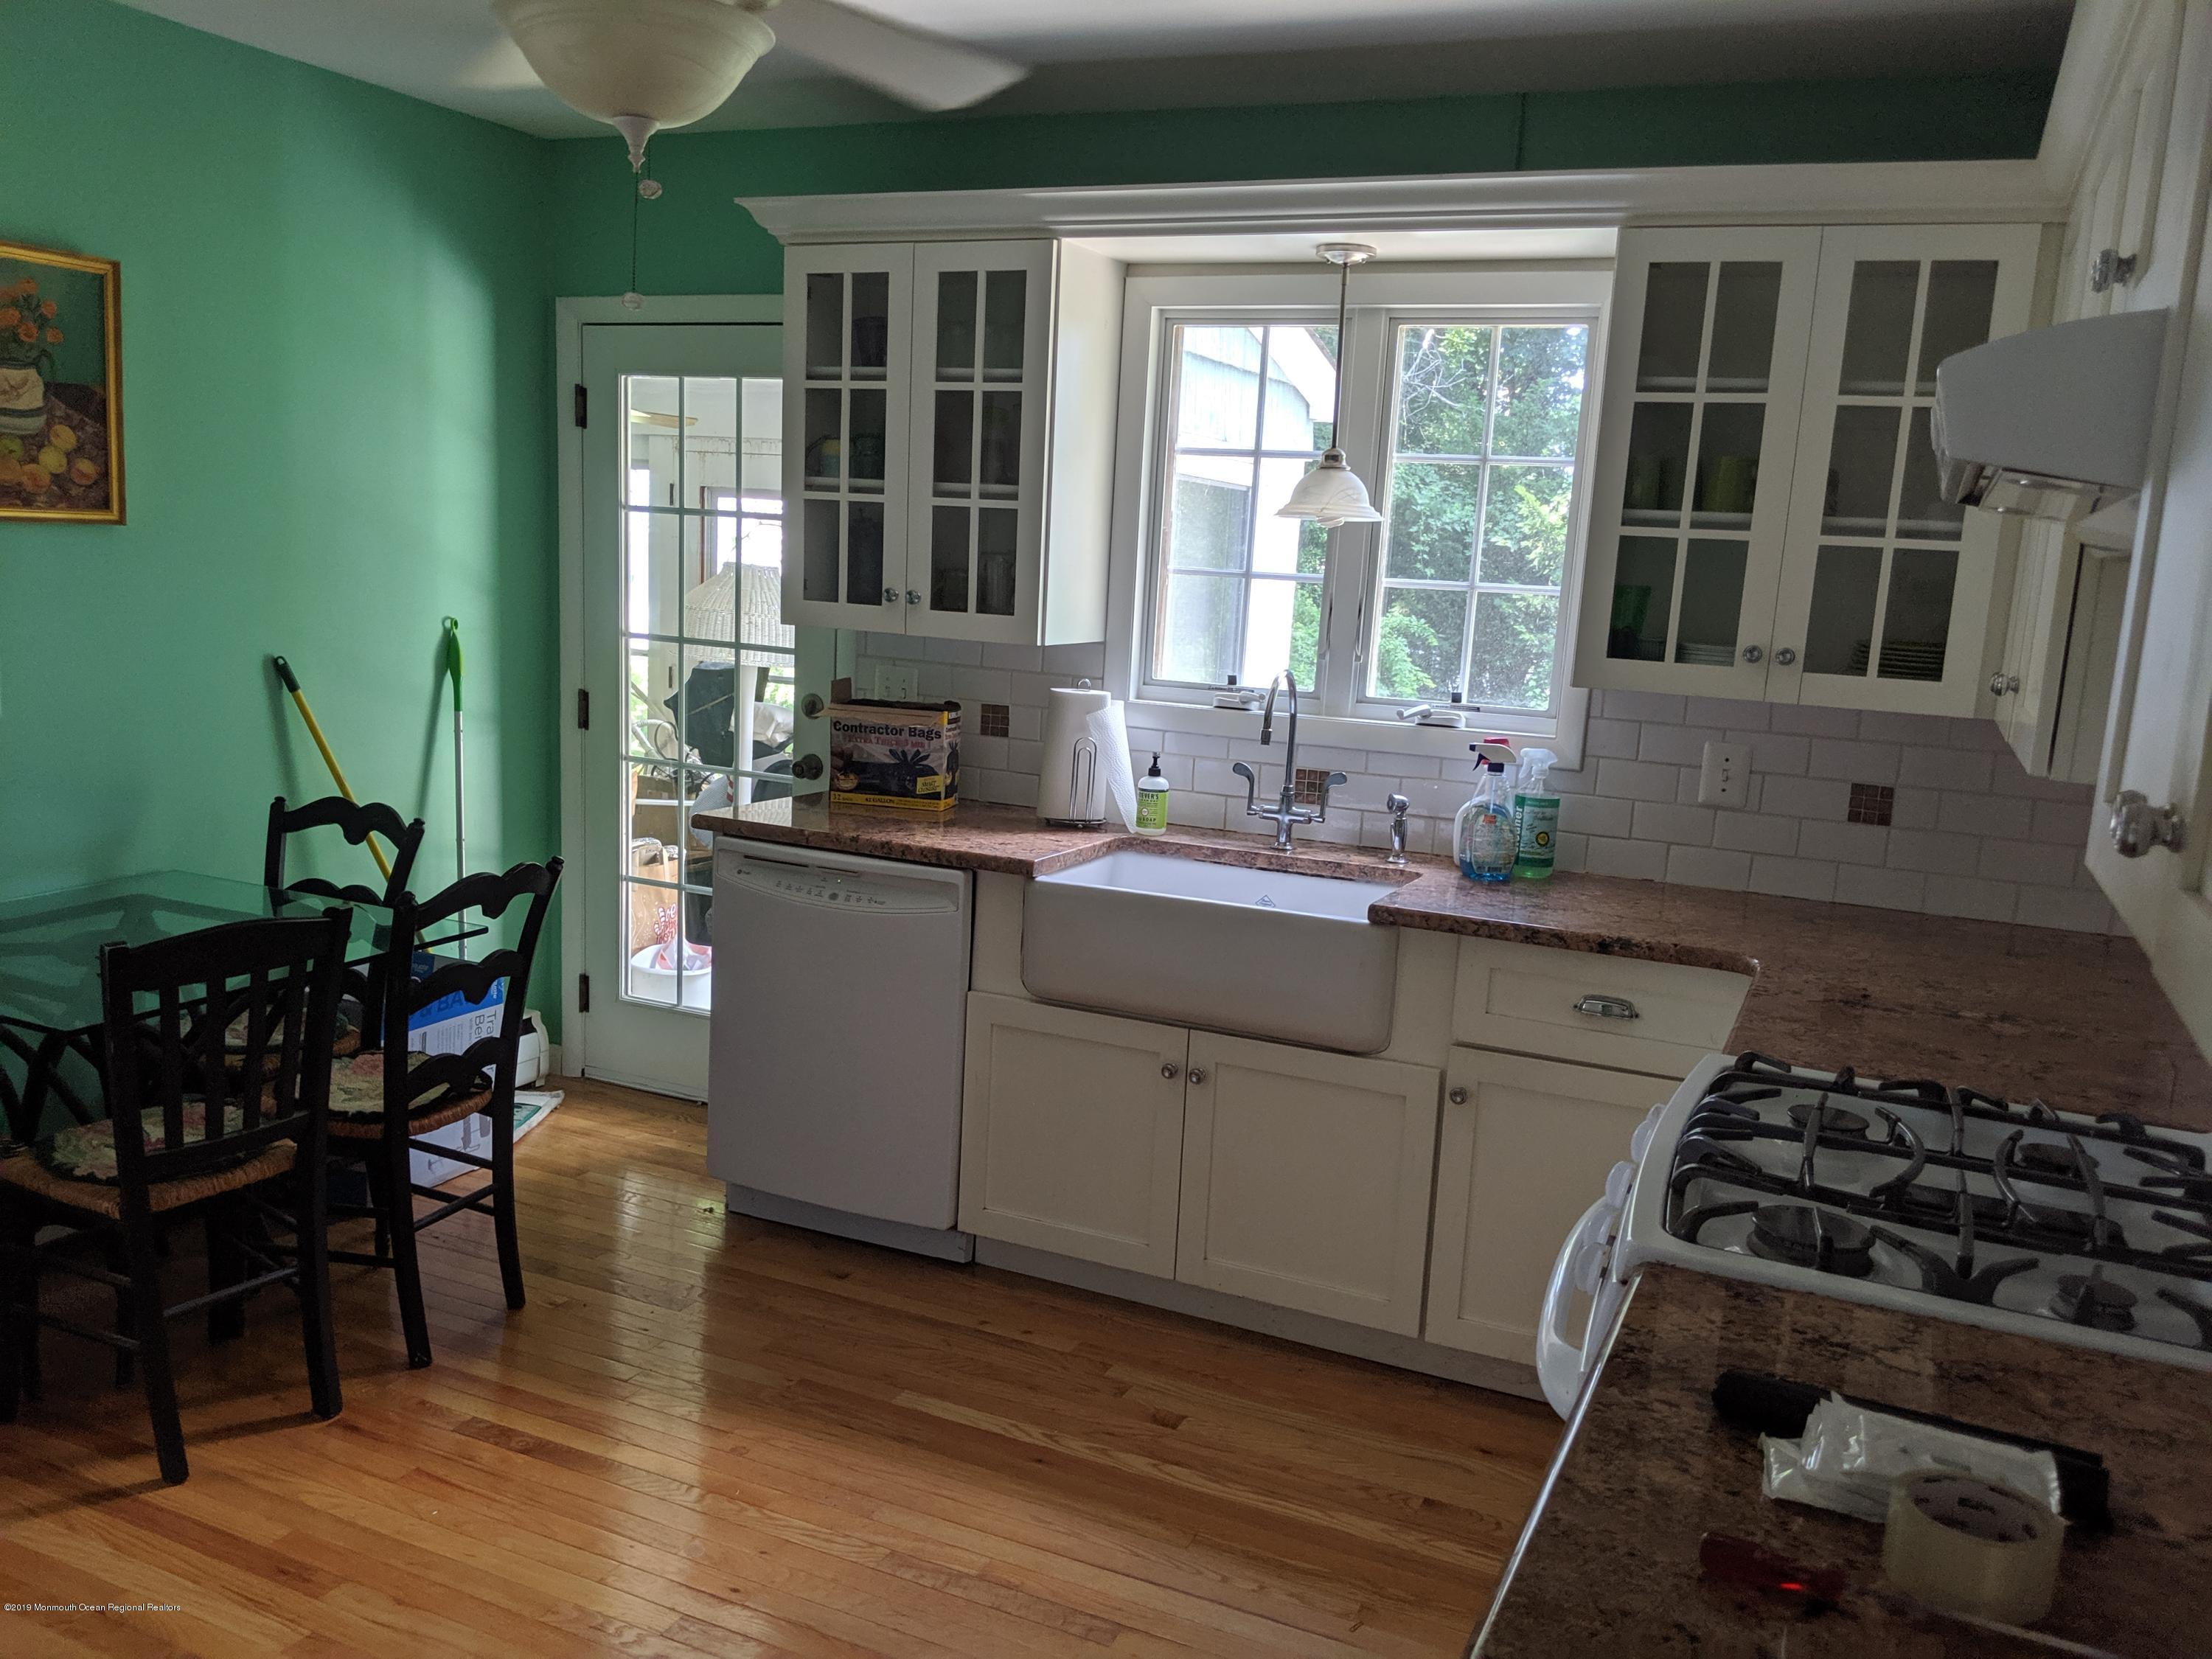 Awesome location very close to downtown Red Bank!  Huge, 75 x 150 lot!  Needs updating on outside, inside is pretty good.. All hardwood floors thoughout.. updated kitchen and bath..  2 br up, 2 down.. 3 season room off back.. as-is sale.. basement.. ceiling fans.. hwbb heat.almost 2000 sf of living space..